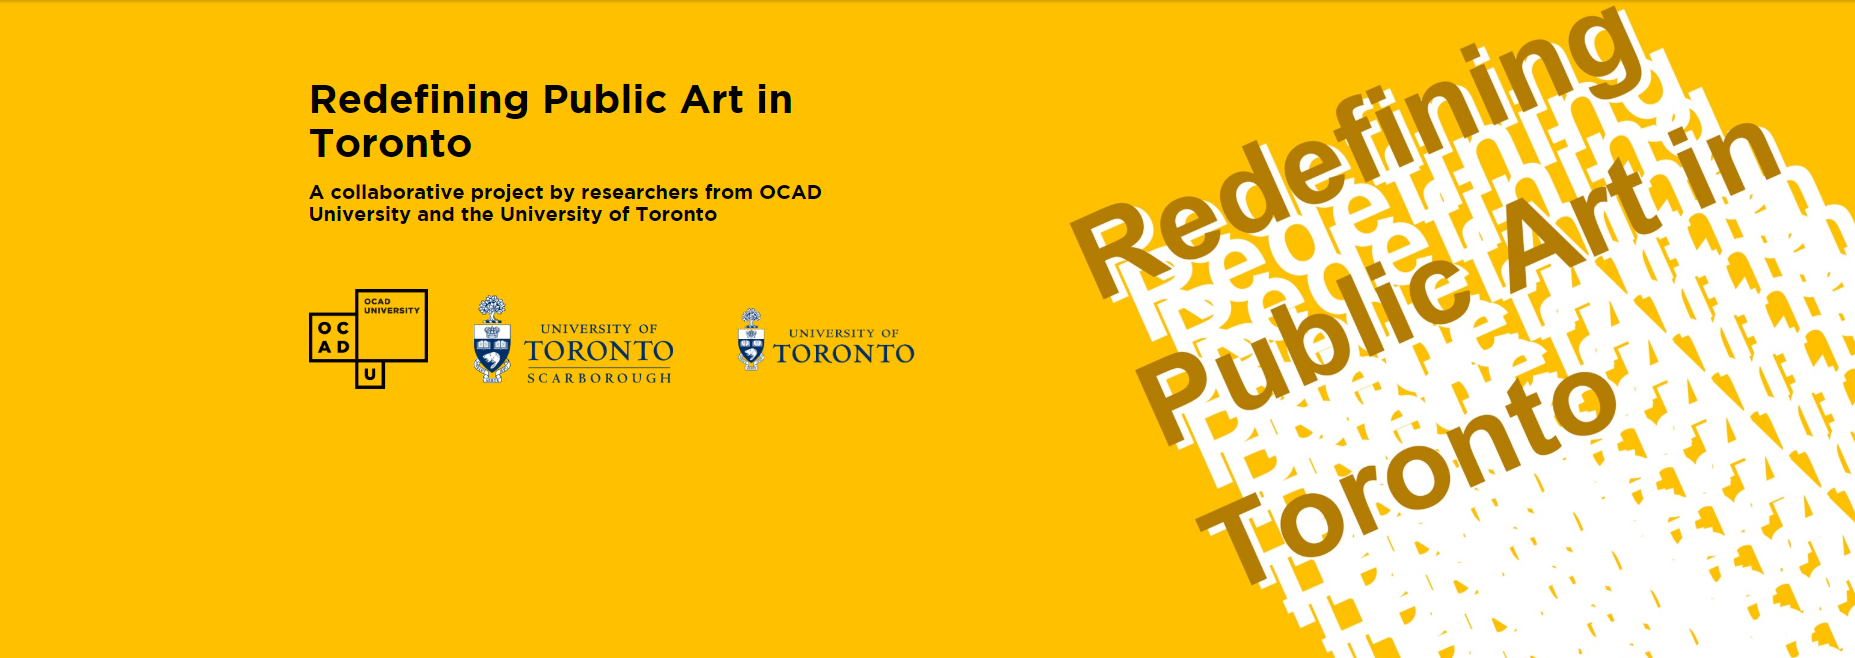 "Title banner for ""Redefining Public Art in Toronto"" with OCAD and U of T logos."